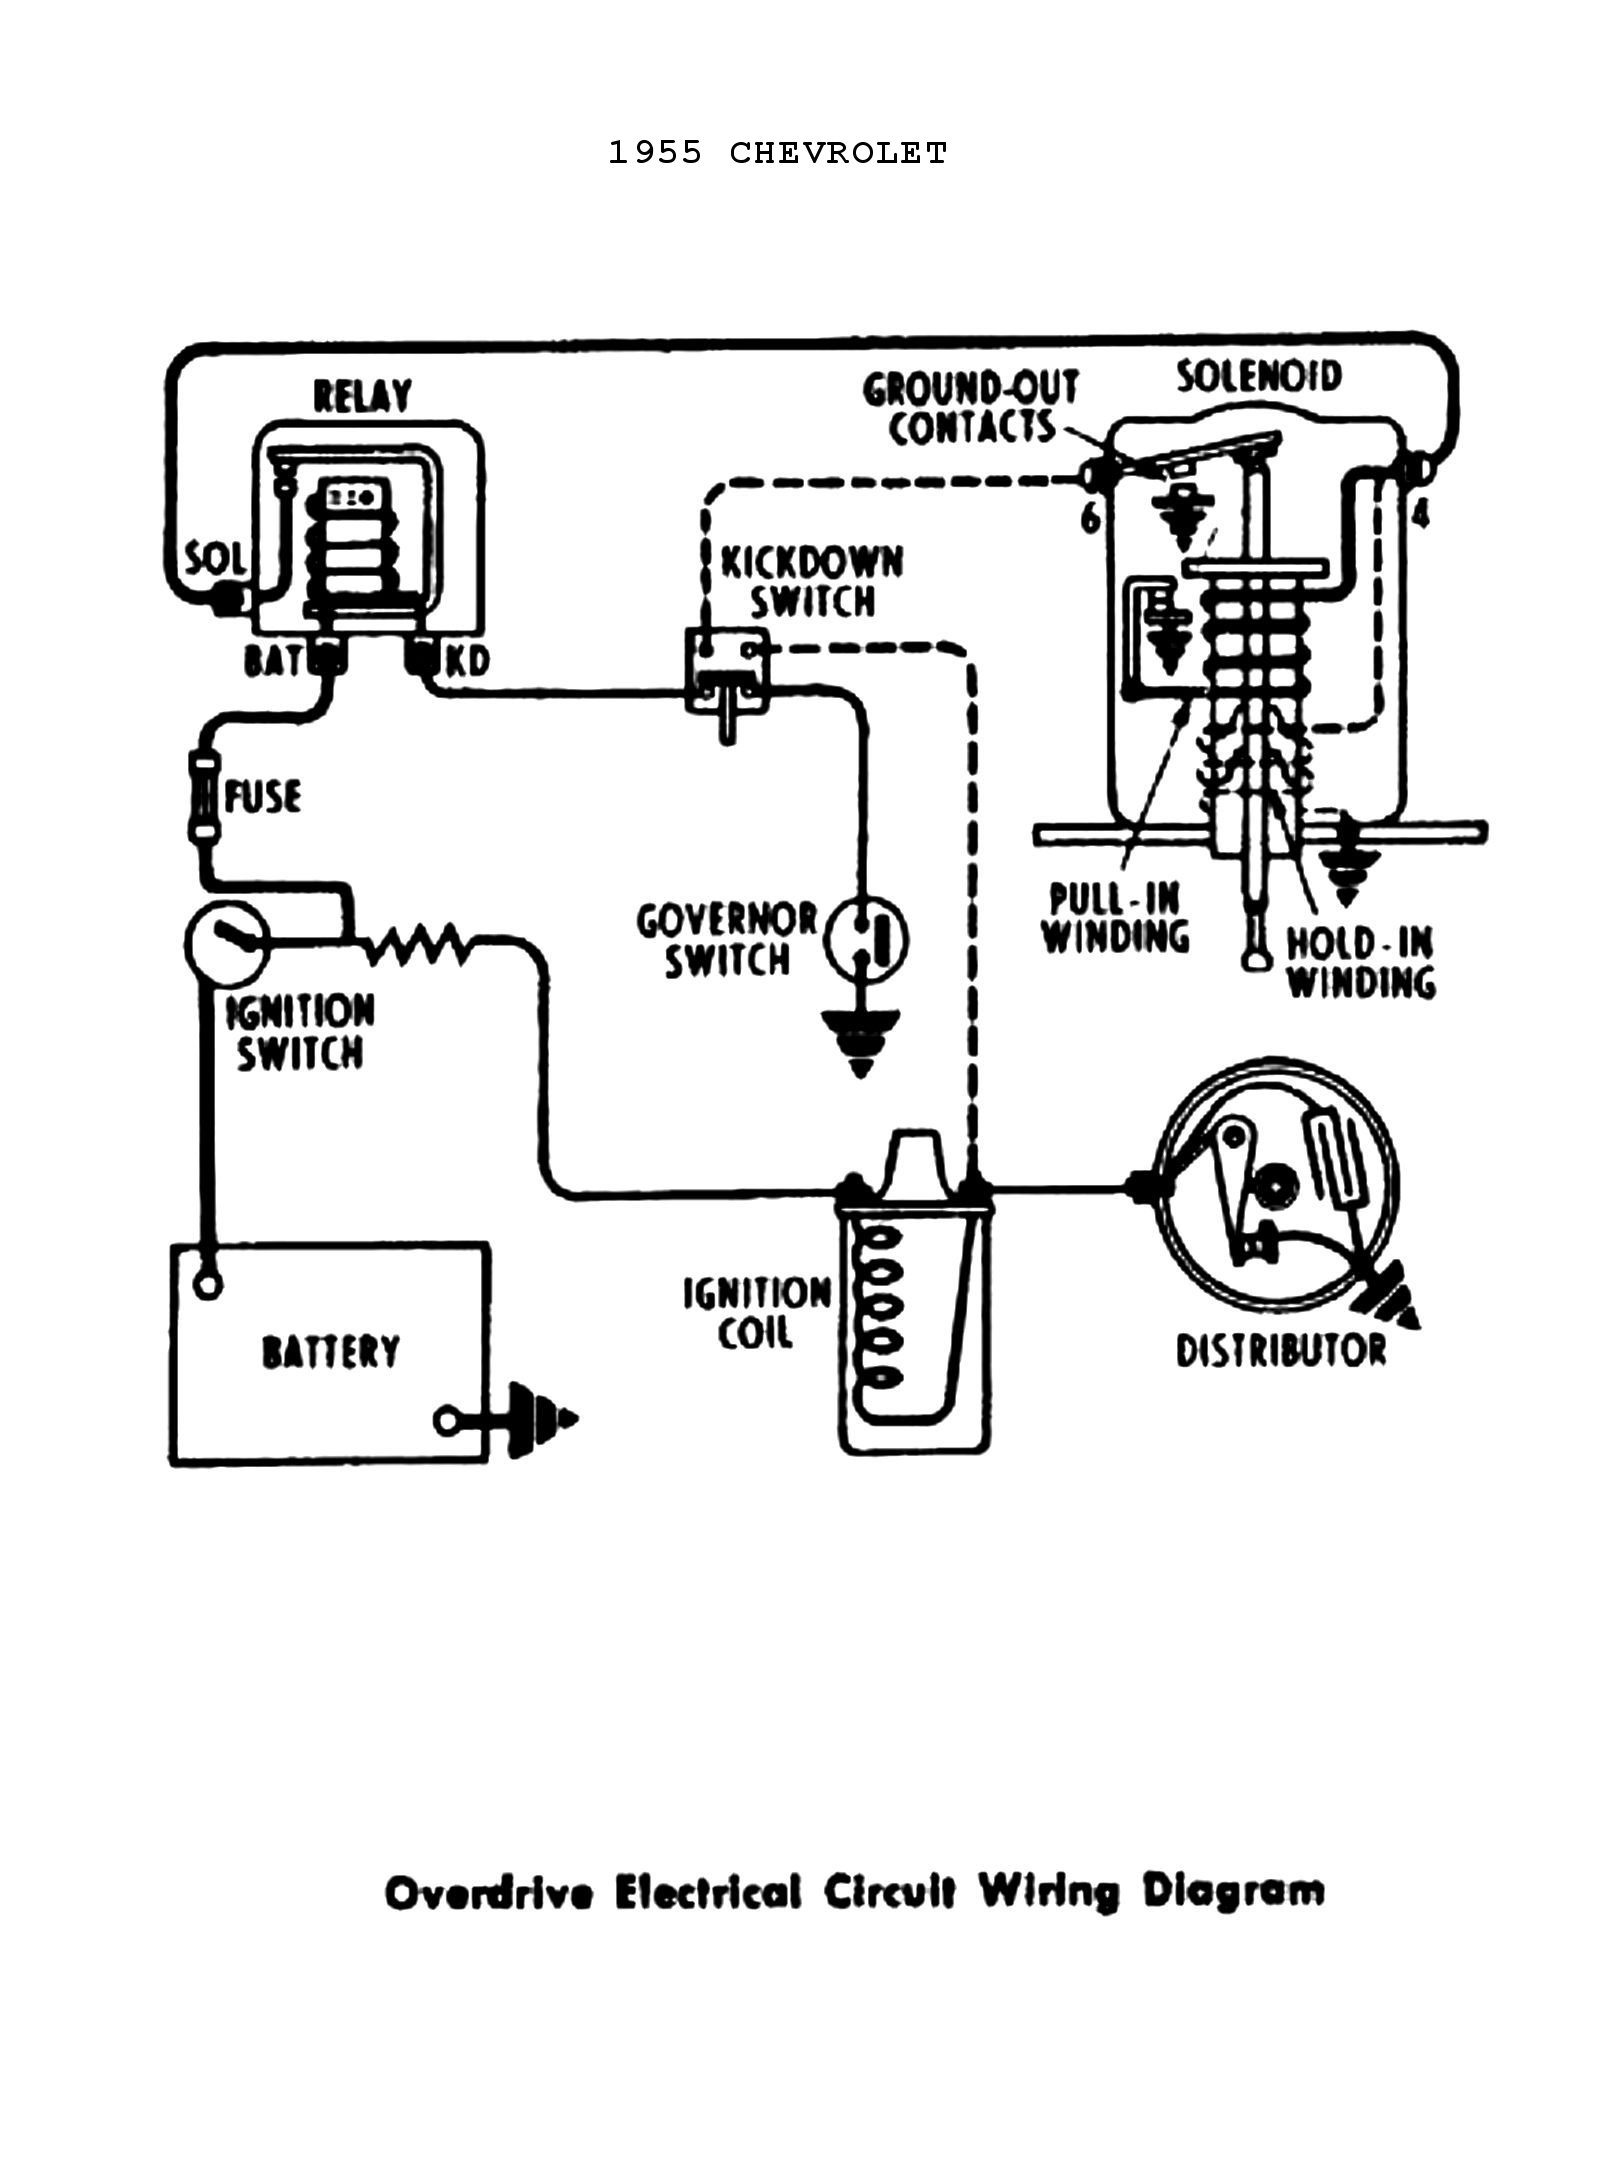 150323 Vacuum Hose Connection Where also File 1968 Shelby GT350 engine further Md876 as well Viewtopic further 350 Hei Spark Plug Wiring Diagram. on firing order 1997 ford 302